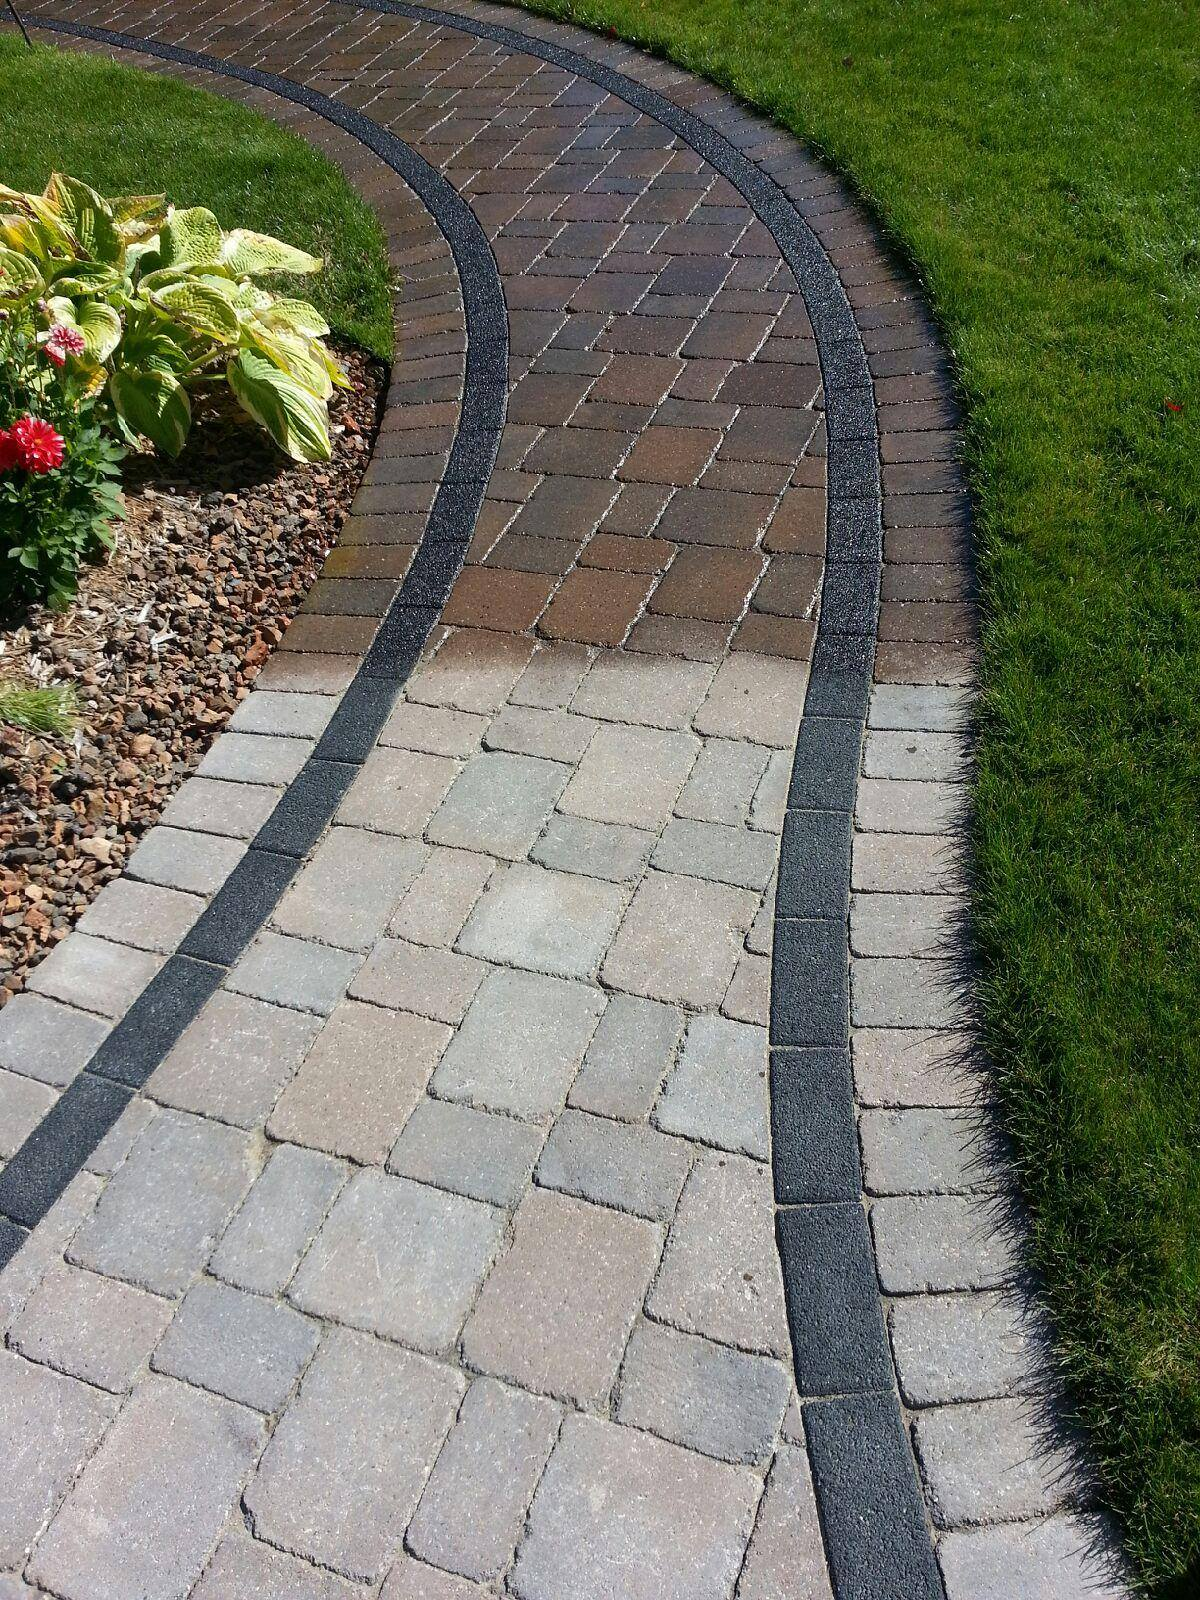 Brick Pavers by landscaping companies in Macomb MI